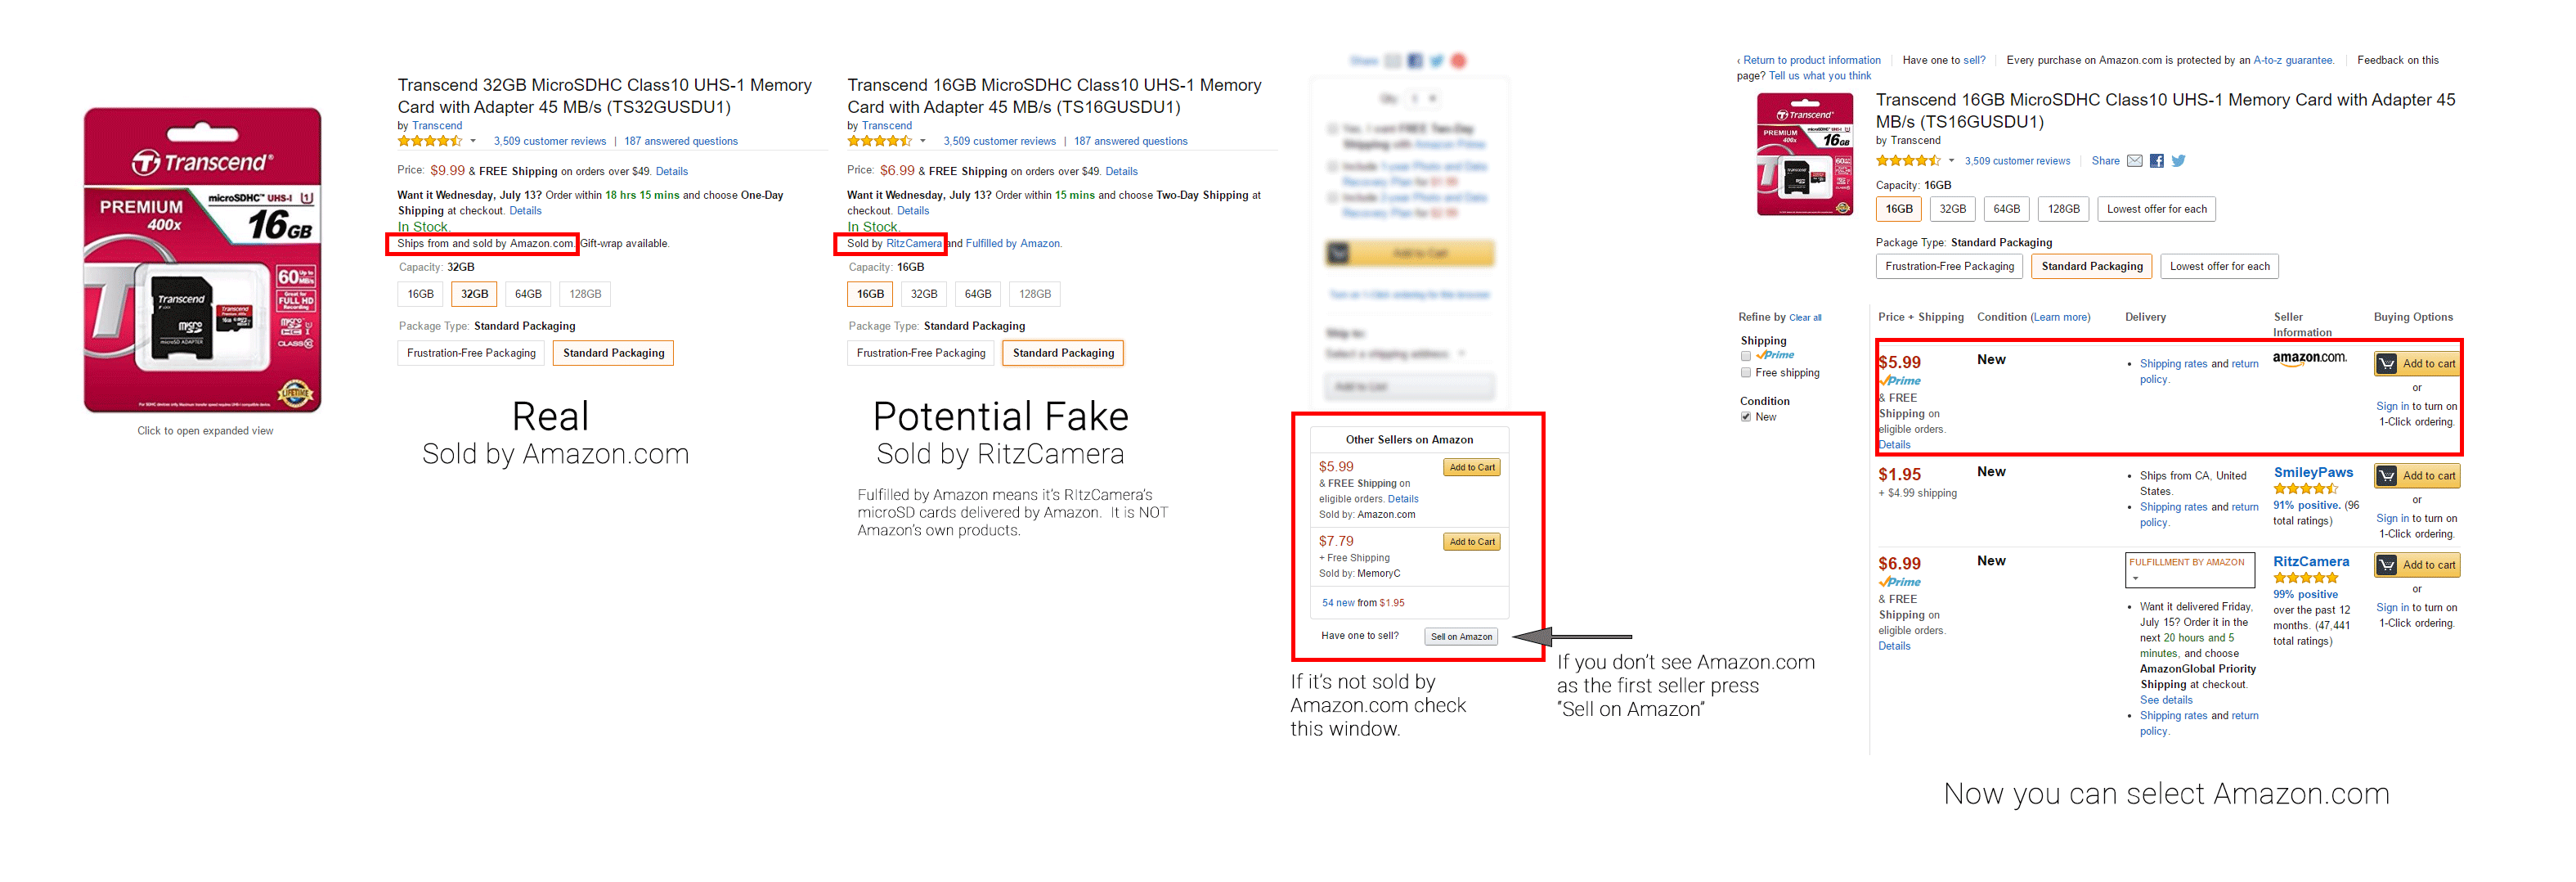 how to avoid counterfeit products on amazon